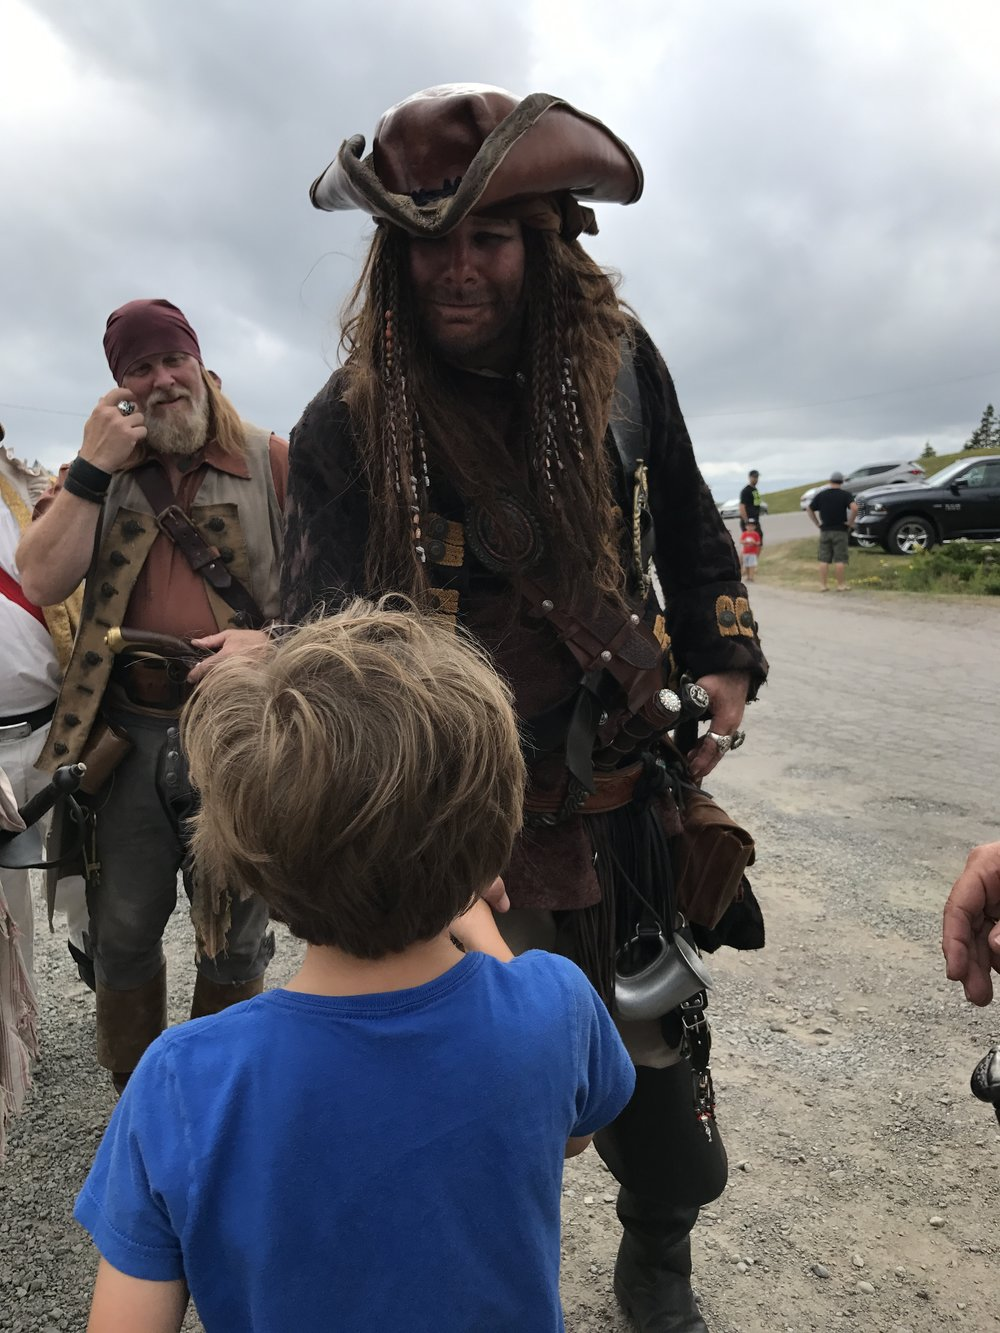 Ben shakes hands with the pirates...hoping to get on their good side. Though he did volunteer to get tossed overboard.